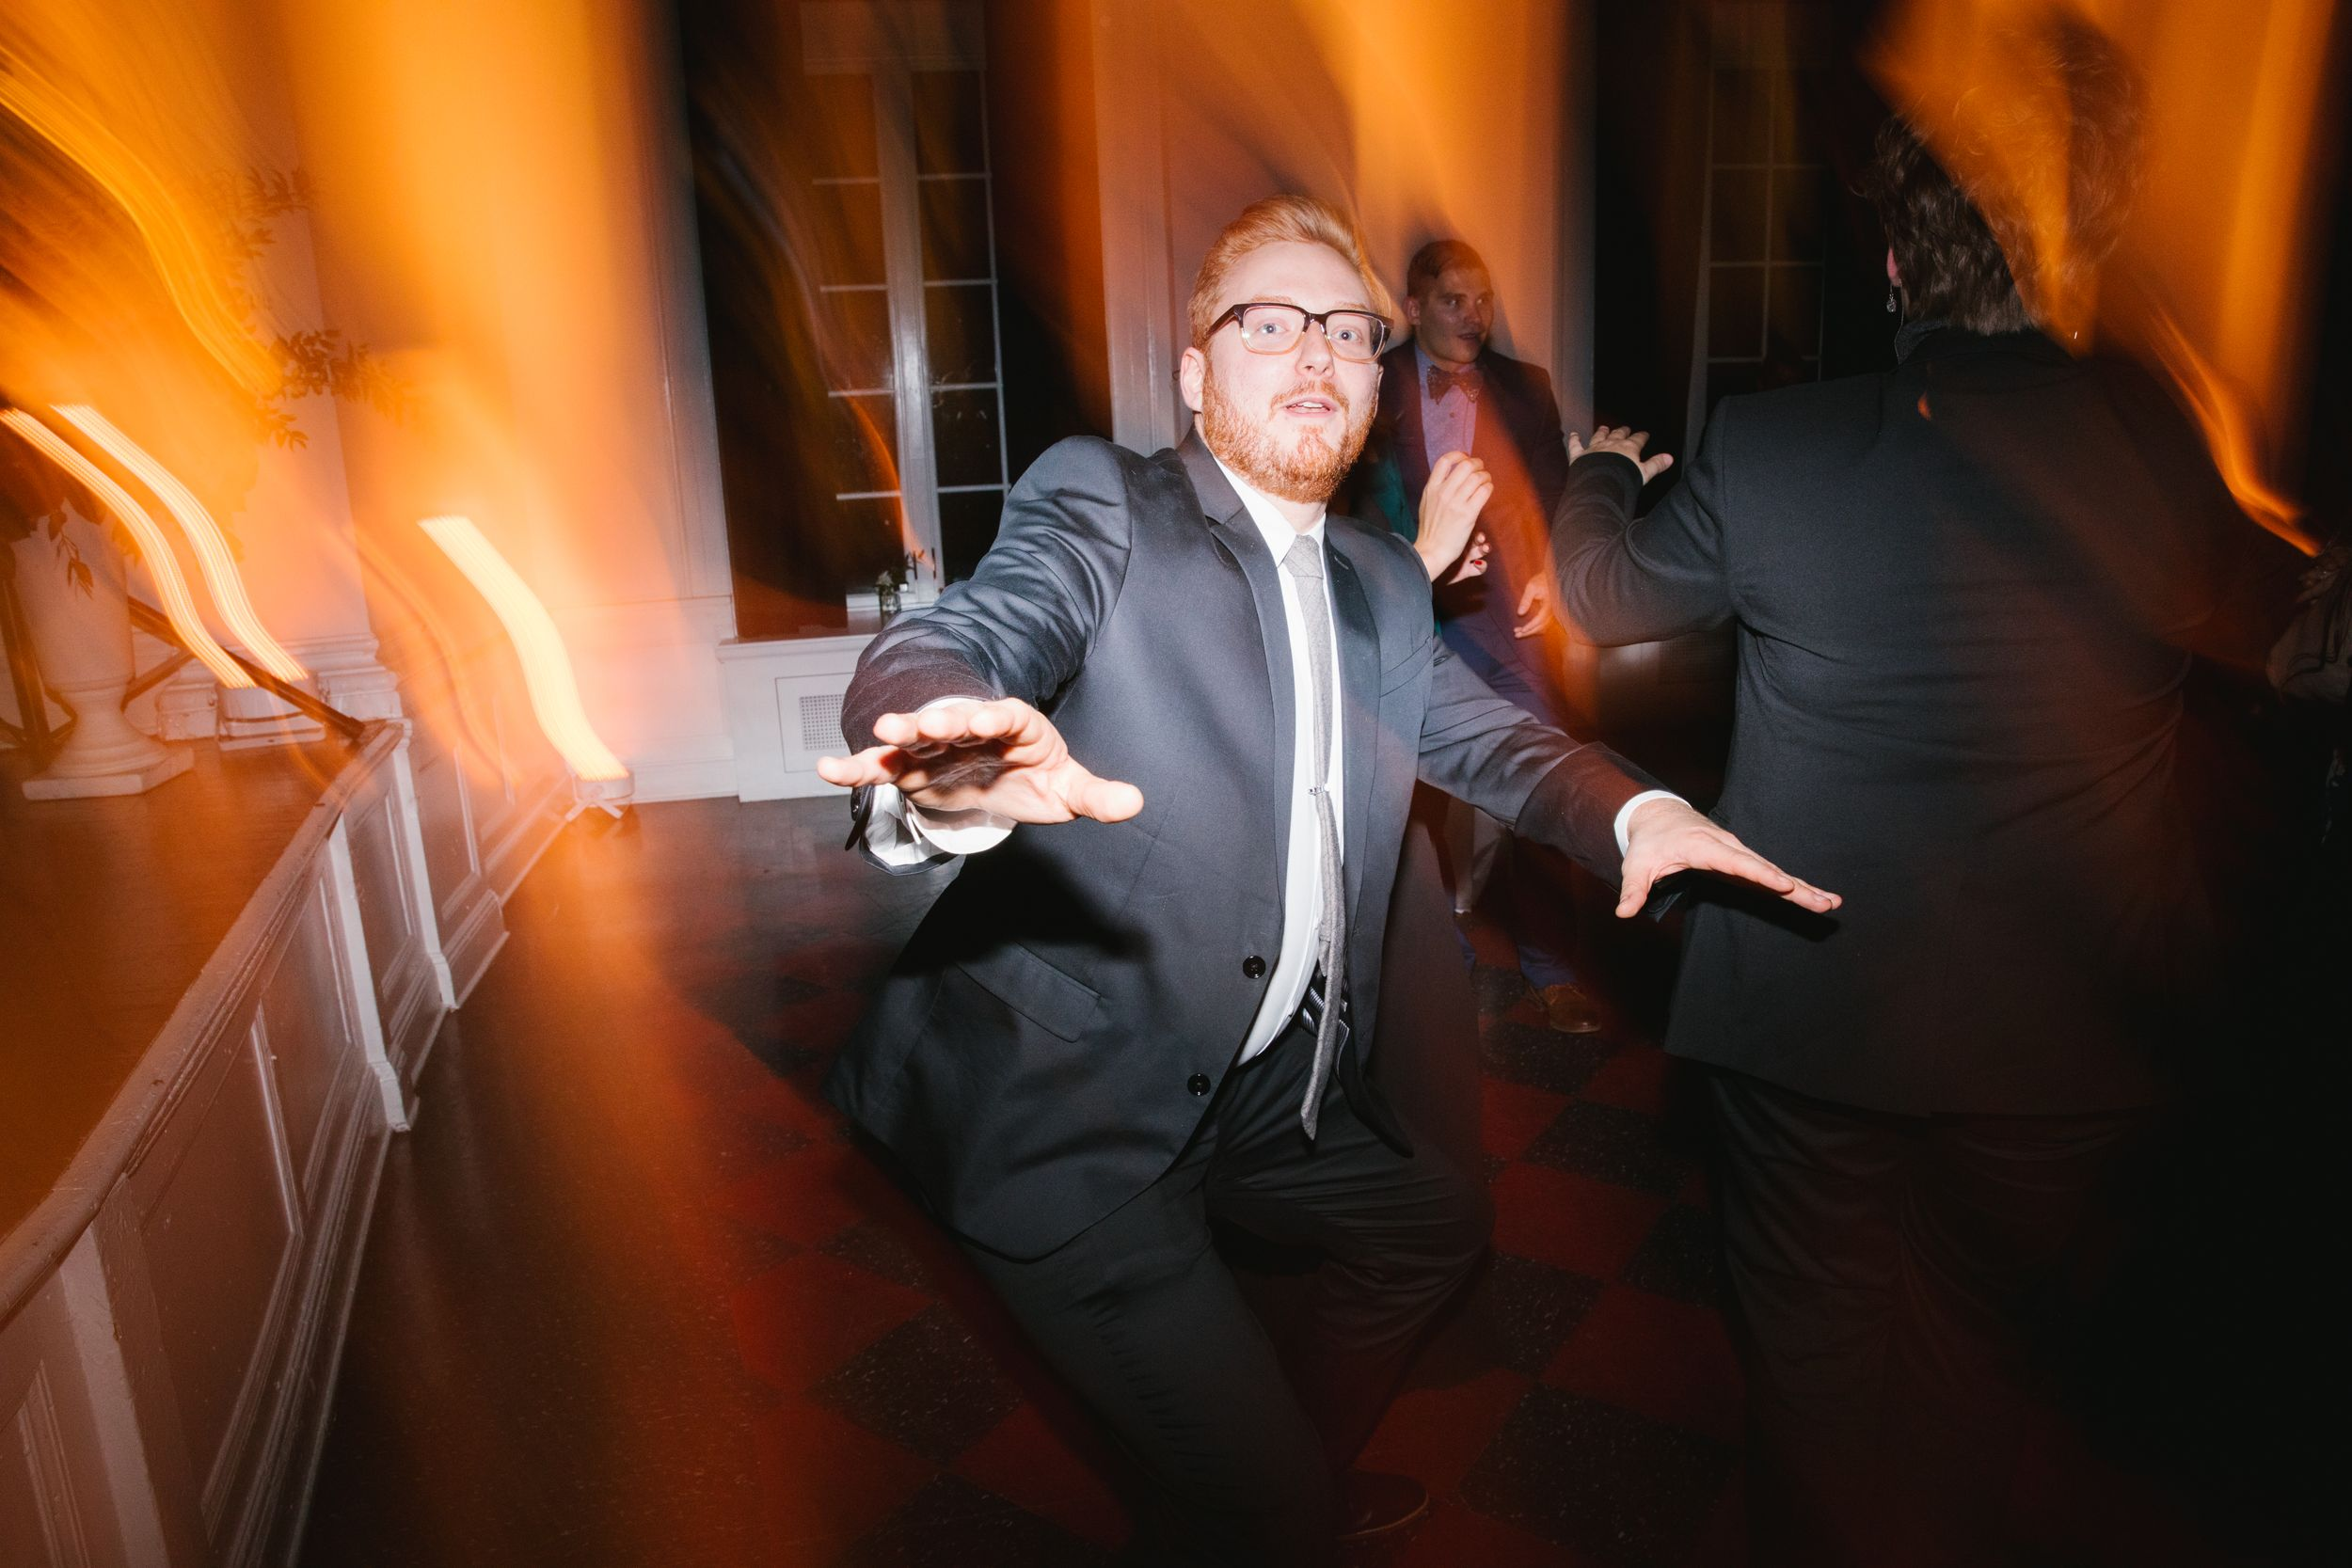 wedding guest dancing during reception ace hotel pittsburgh